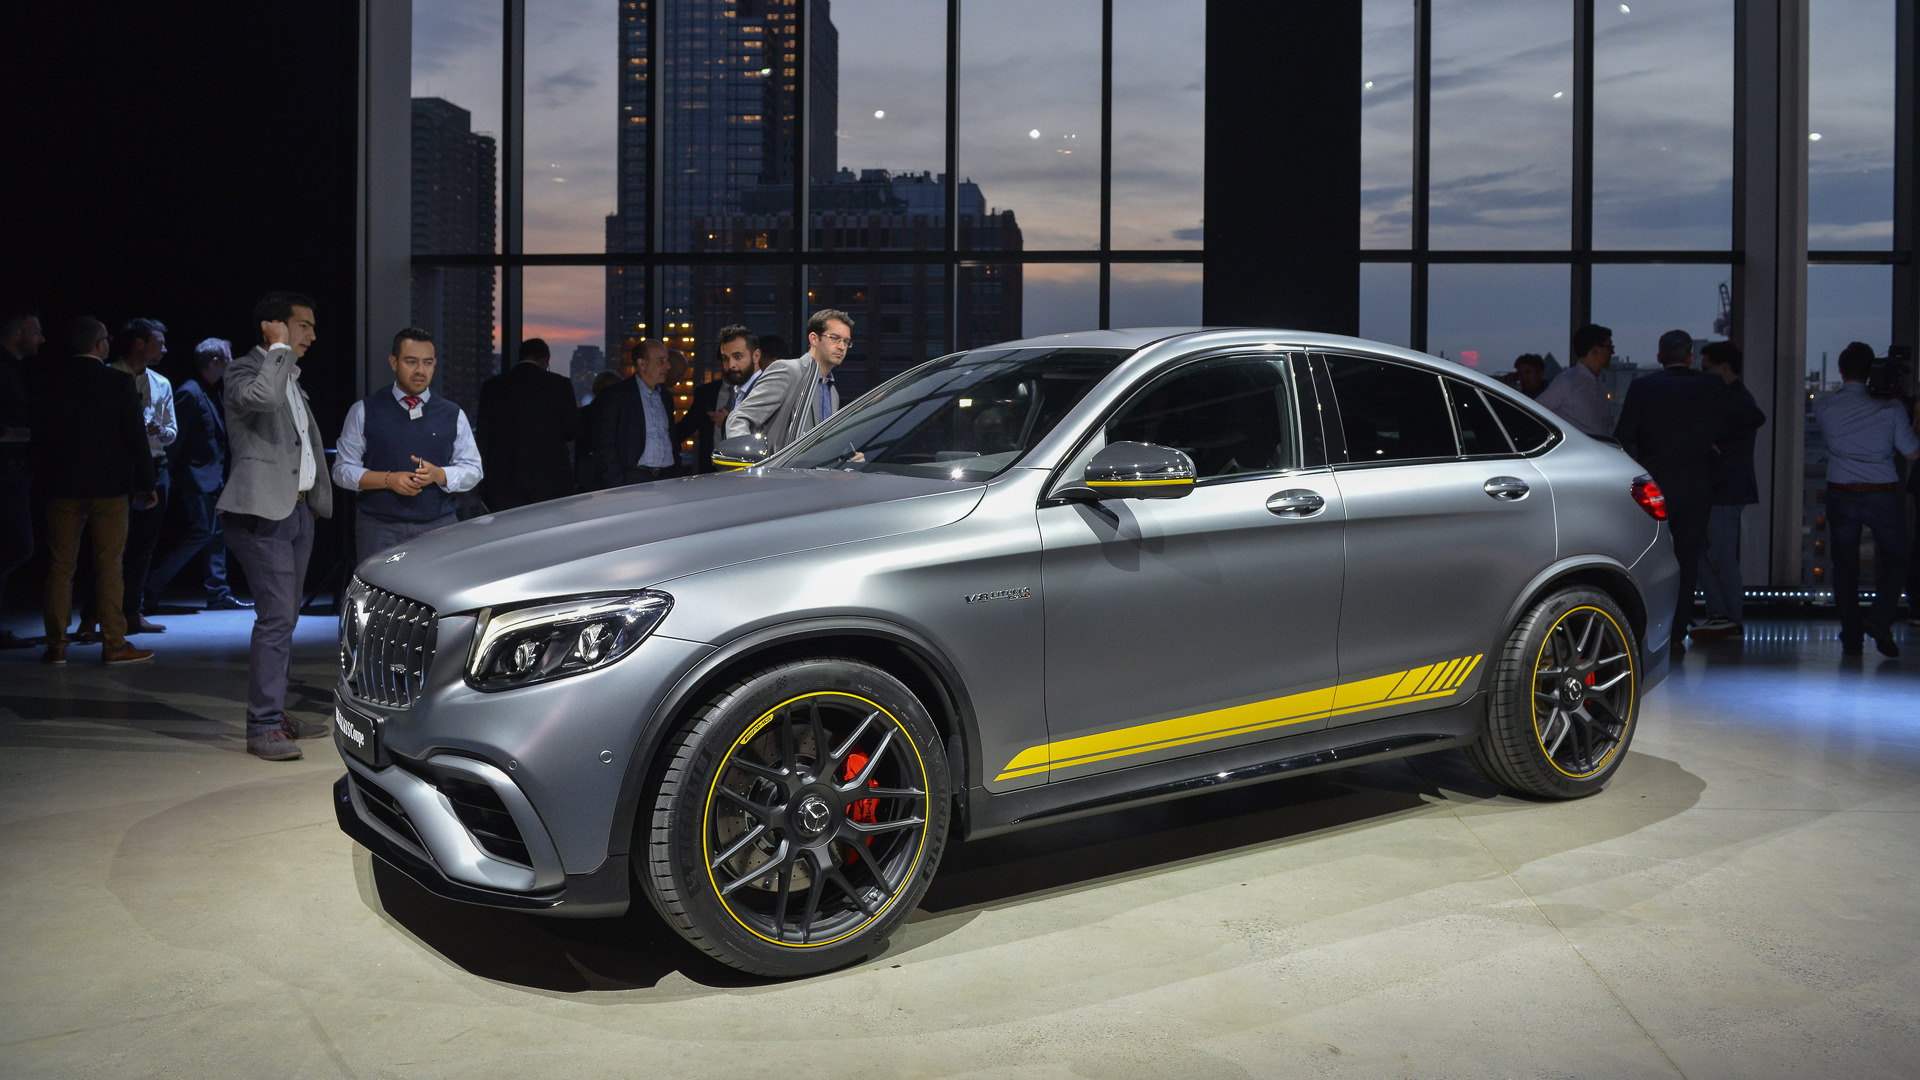 https://icdn-0.motor1.com/images/mgl/YLv7w/s1/2018-mercedes-benz-glc63-and-coupe-new-york-2017.jpg